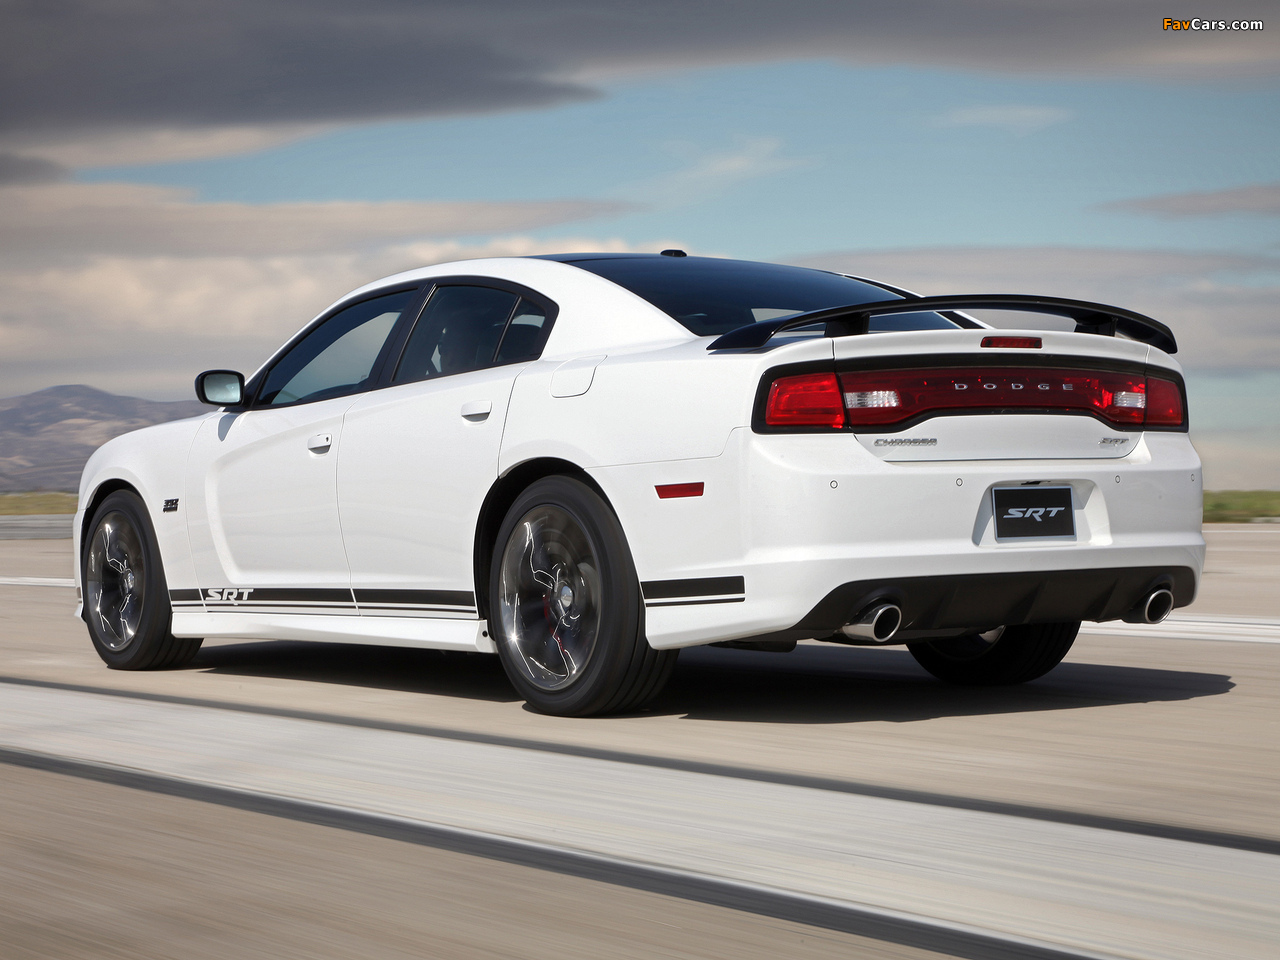 Dodge Charger SRT8 392 Appearance Package 2013 wallpapers (1280 x 960)